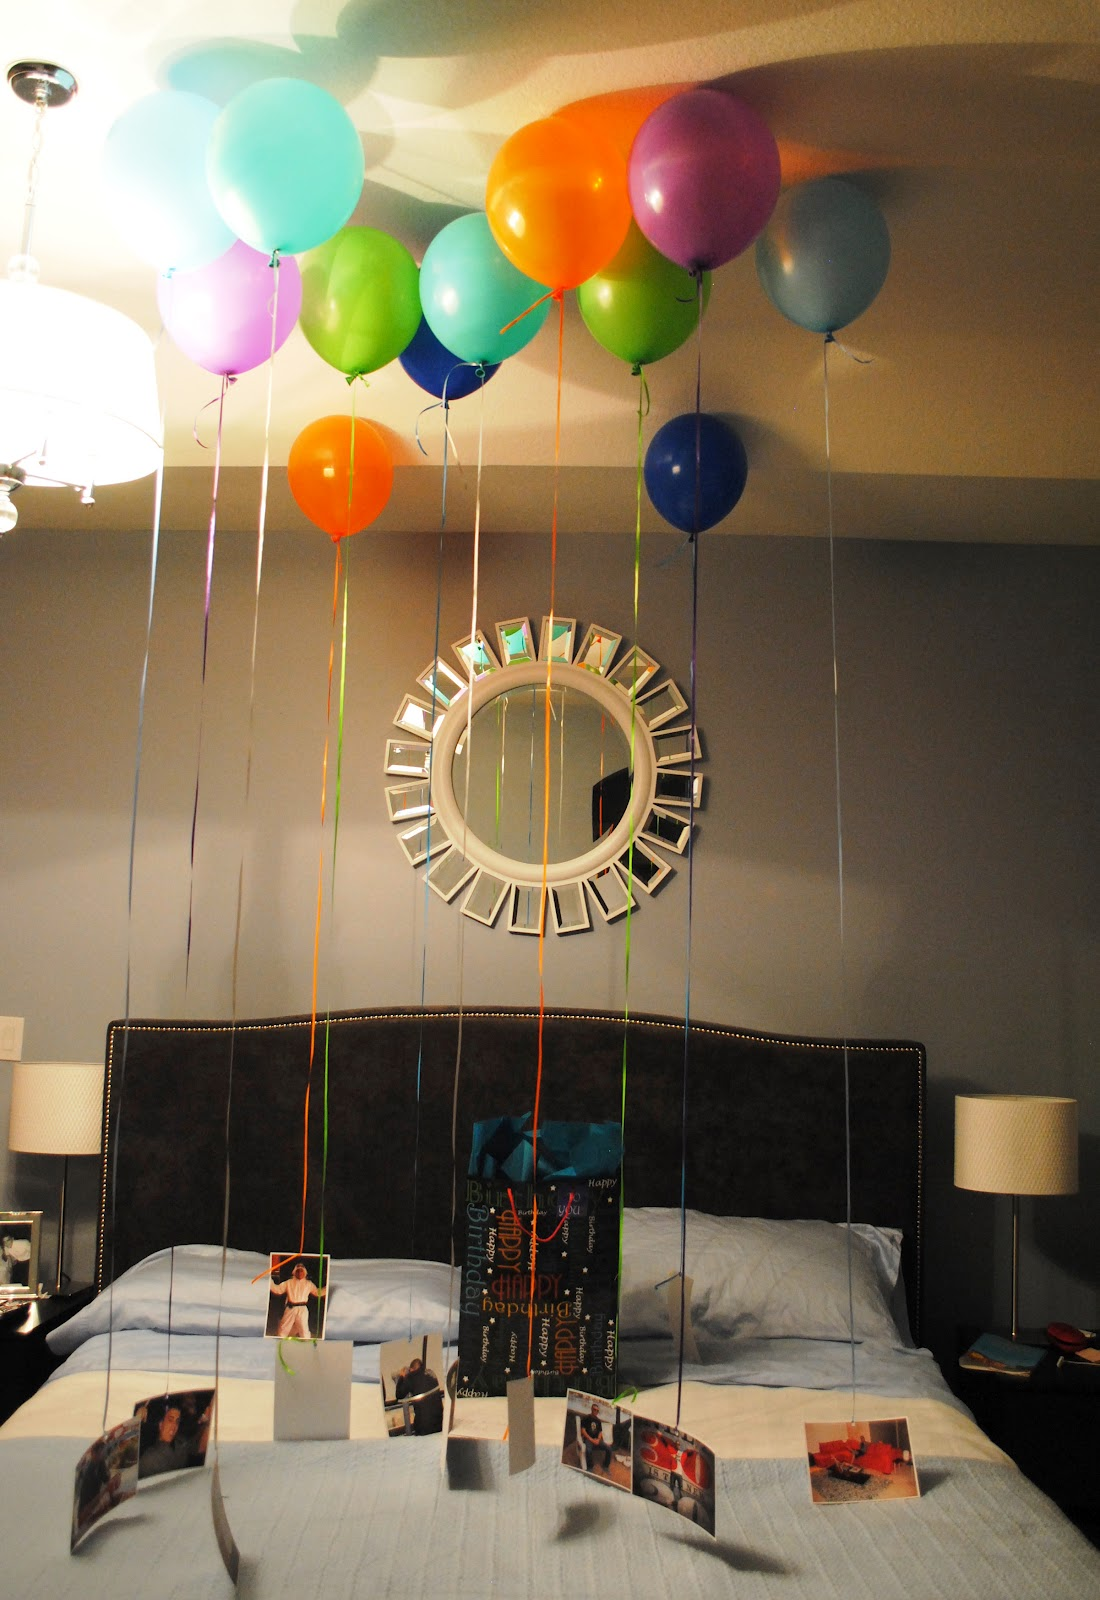 Mind My Beeswax: Hubby's Birthday and a Pinterest Idea